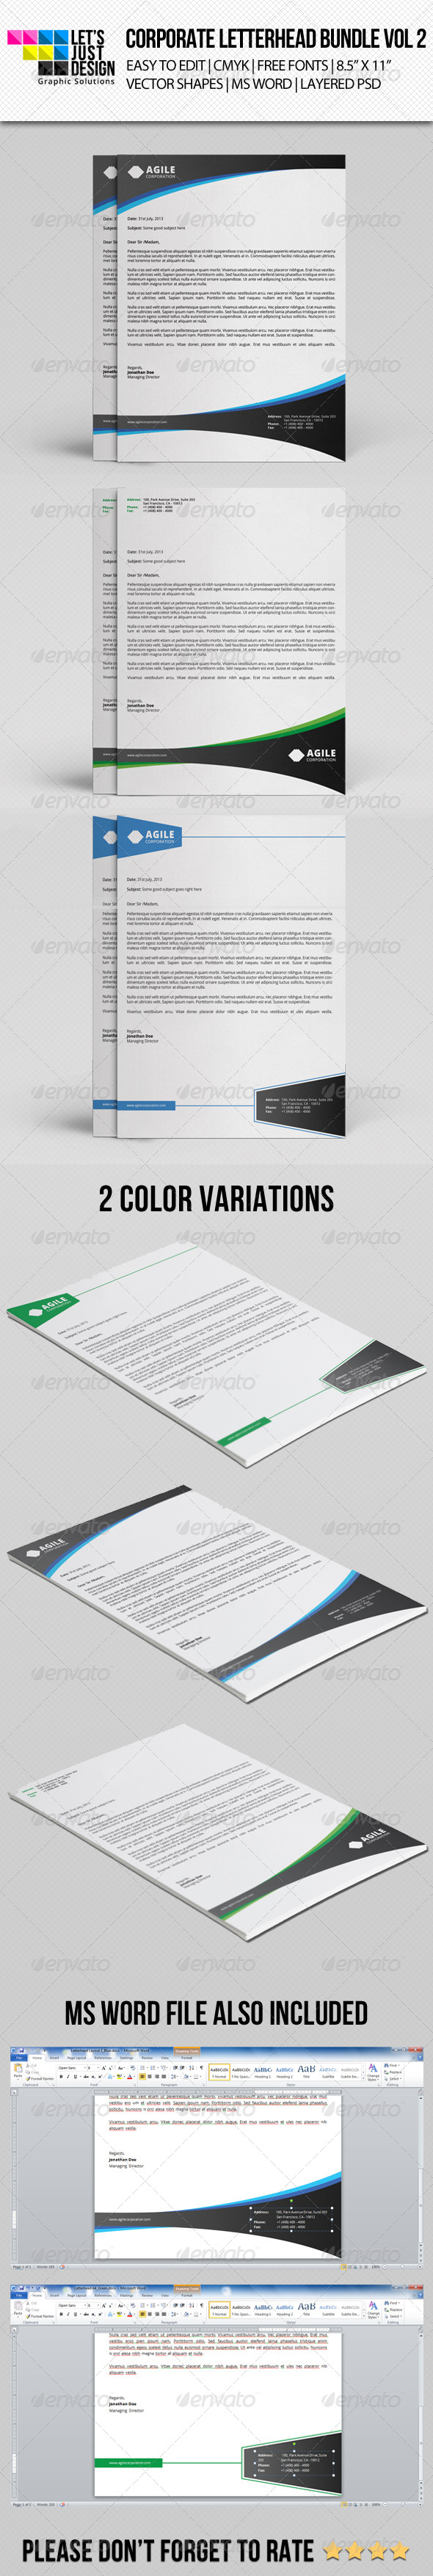 GraphicRiver Corporate Letterhead Bundle Vol 2 8631526